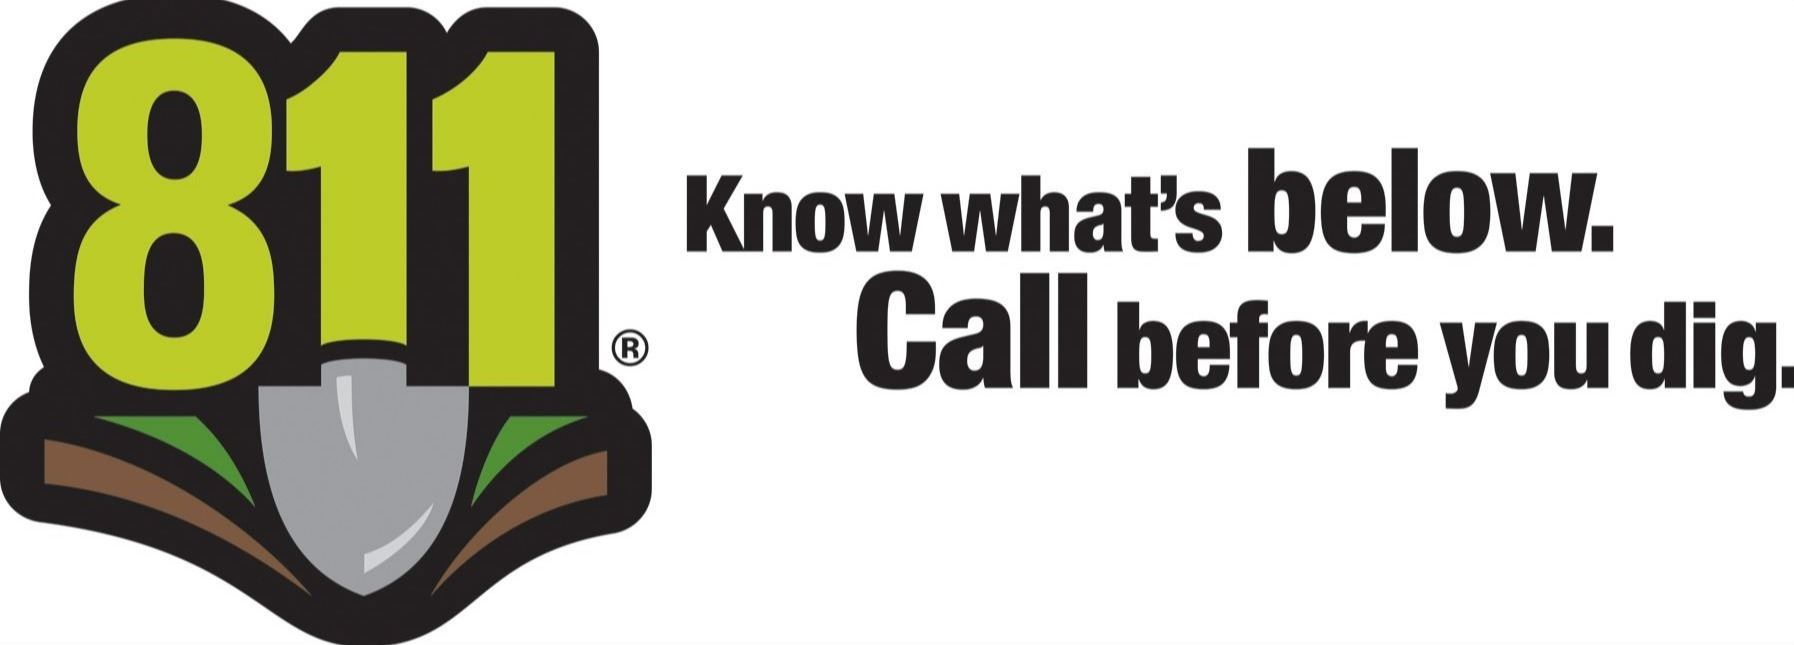 811 Logo Shovel with Know what's below. Call before you Dig.